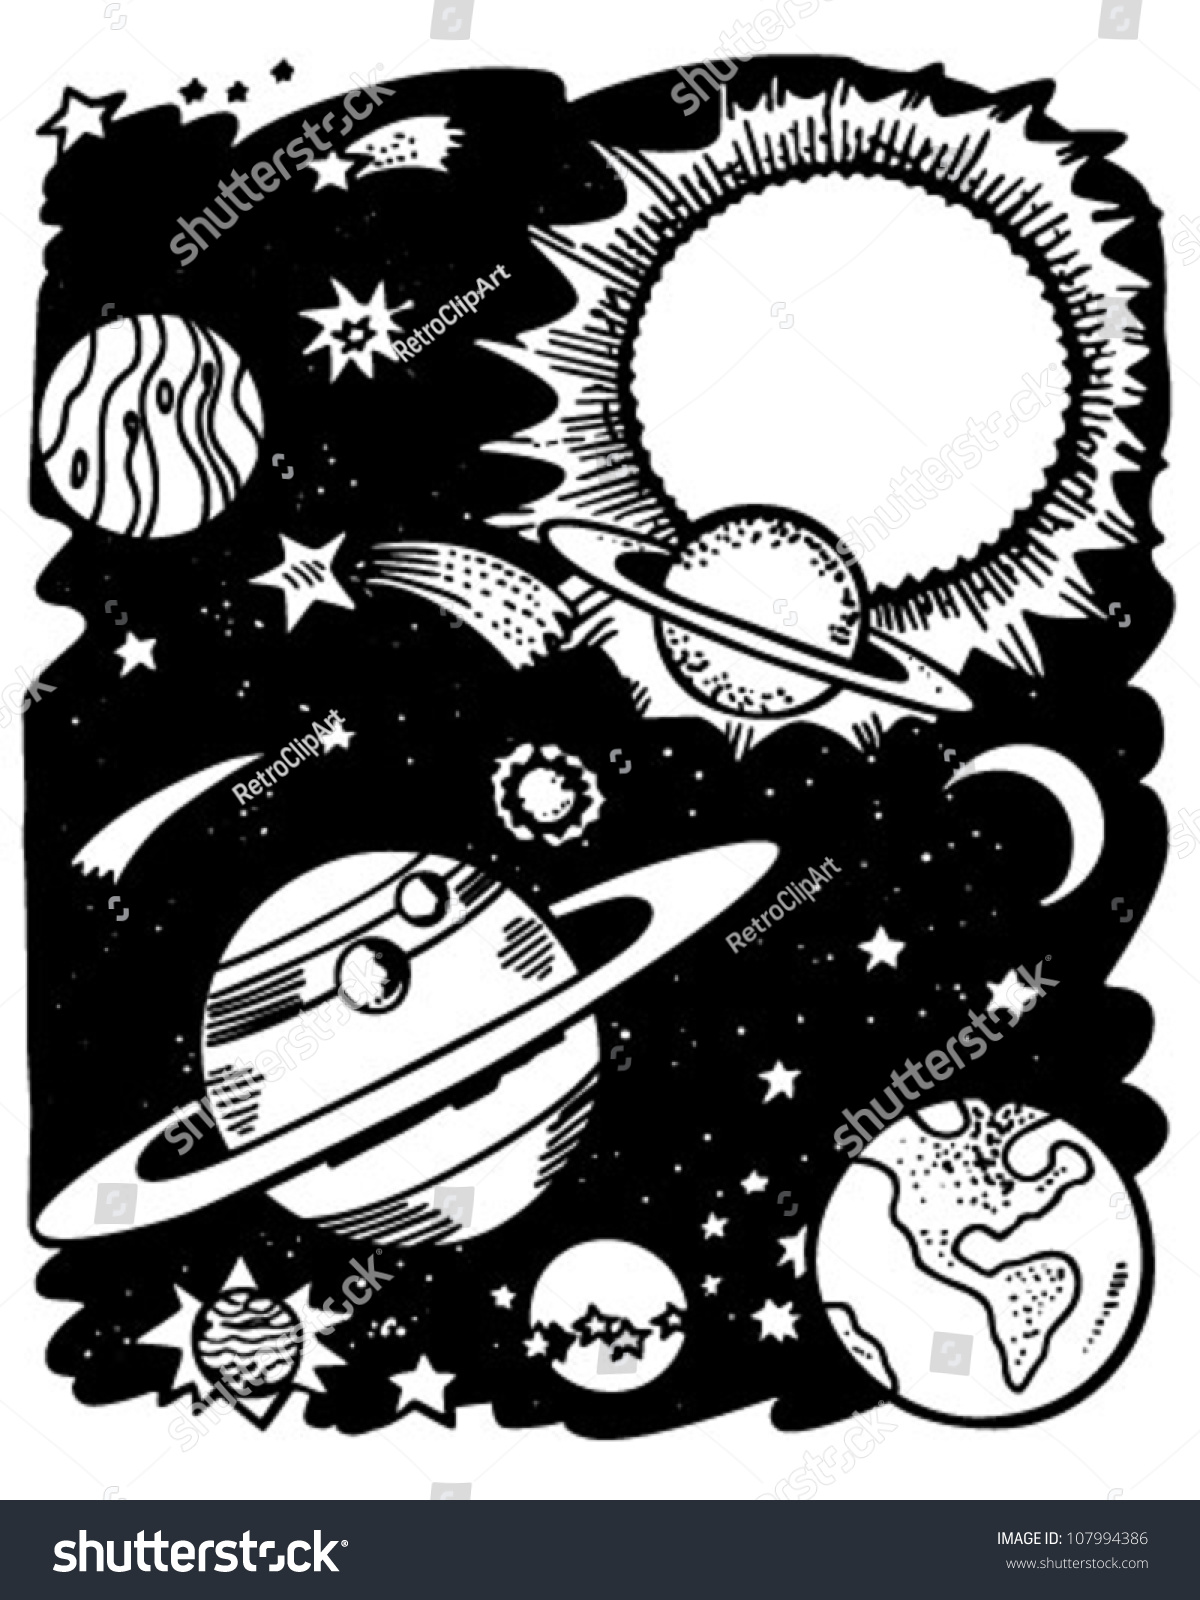 Outer Space Retro Clipart Illustration Stock Vector ...